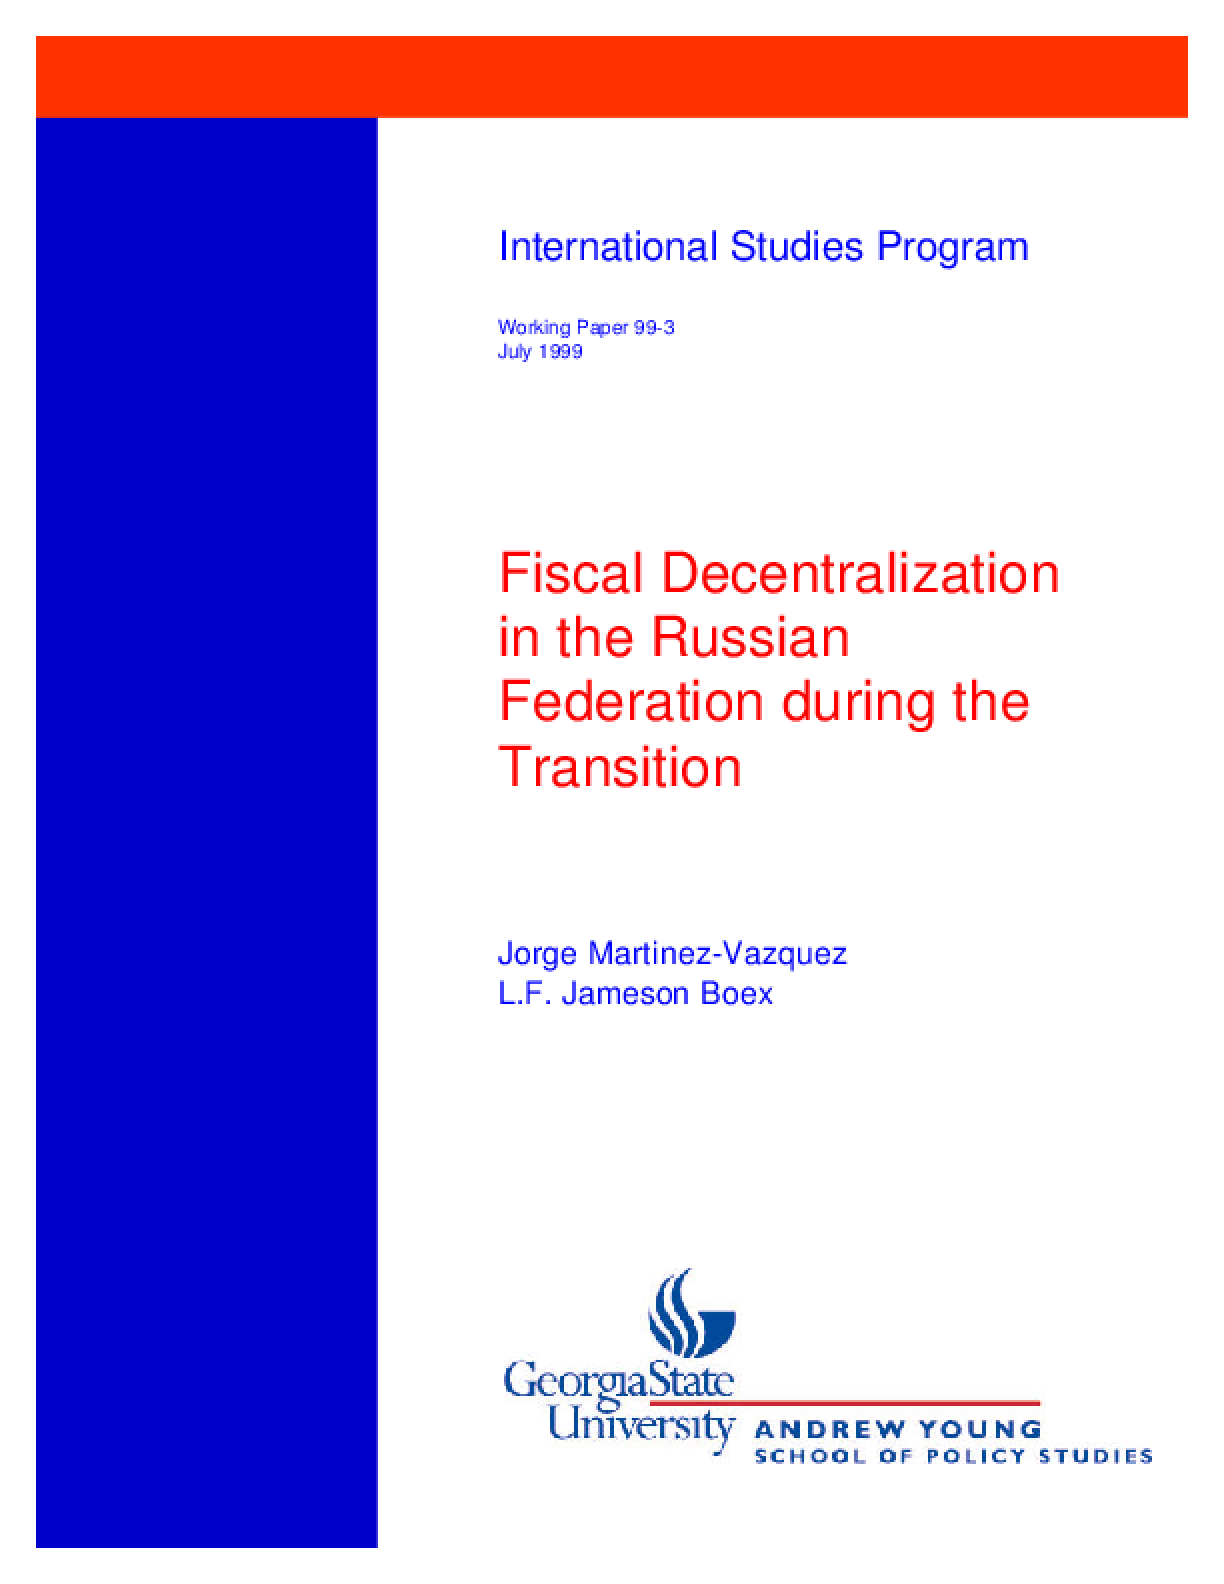 Fiscal Decentralization in the Russian Federation During the Transition